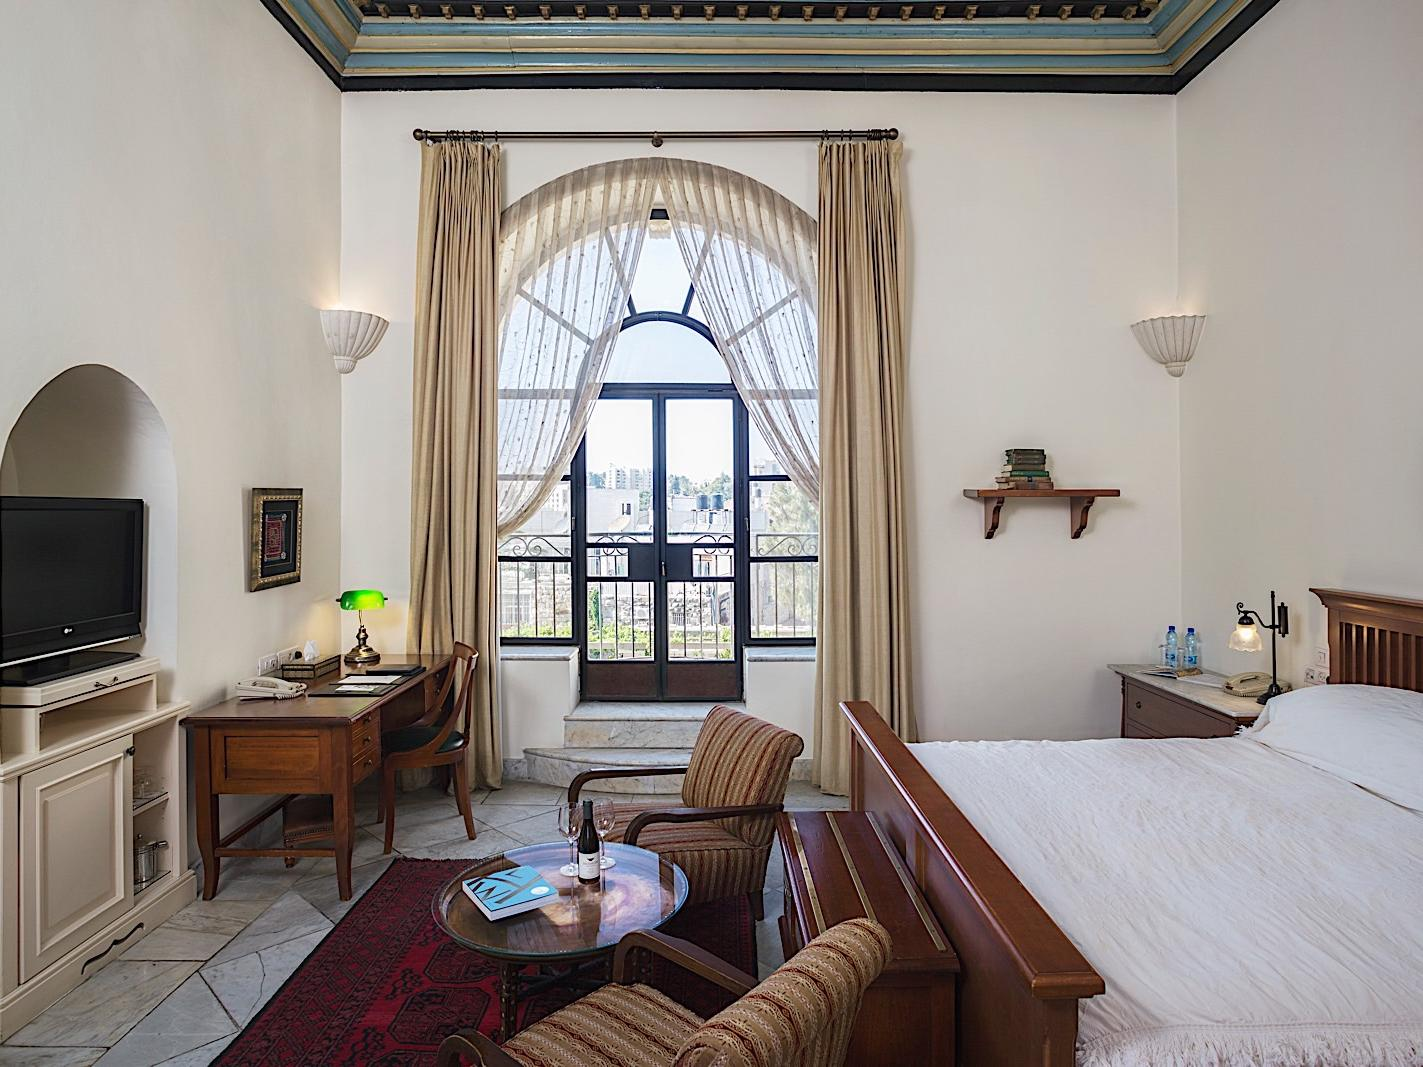 Deluxe Pasha Room at The American Colony Hotel in Jerusalem